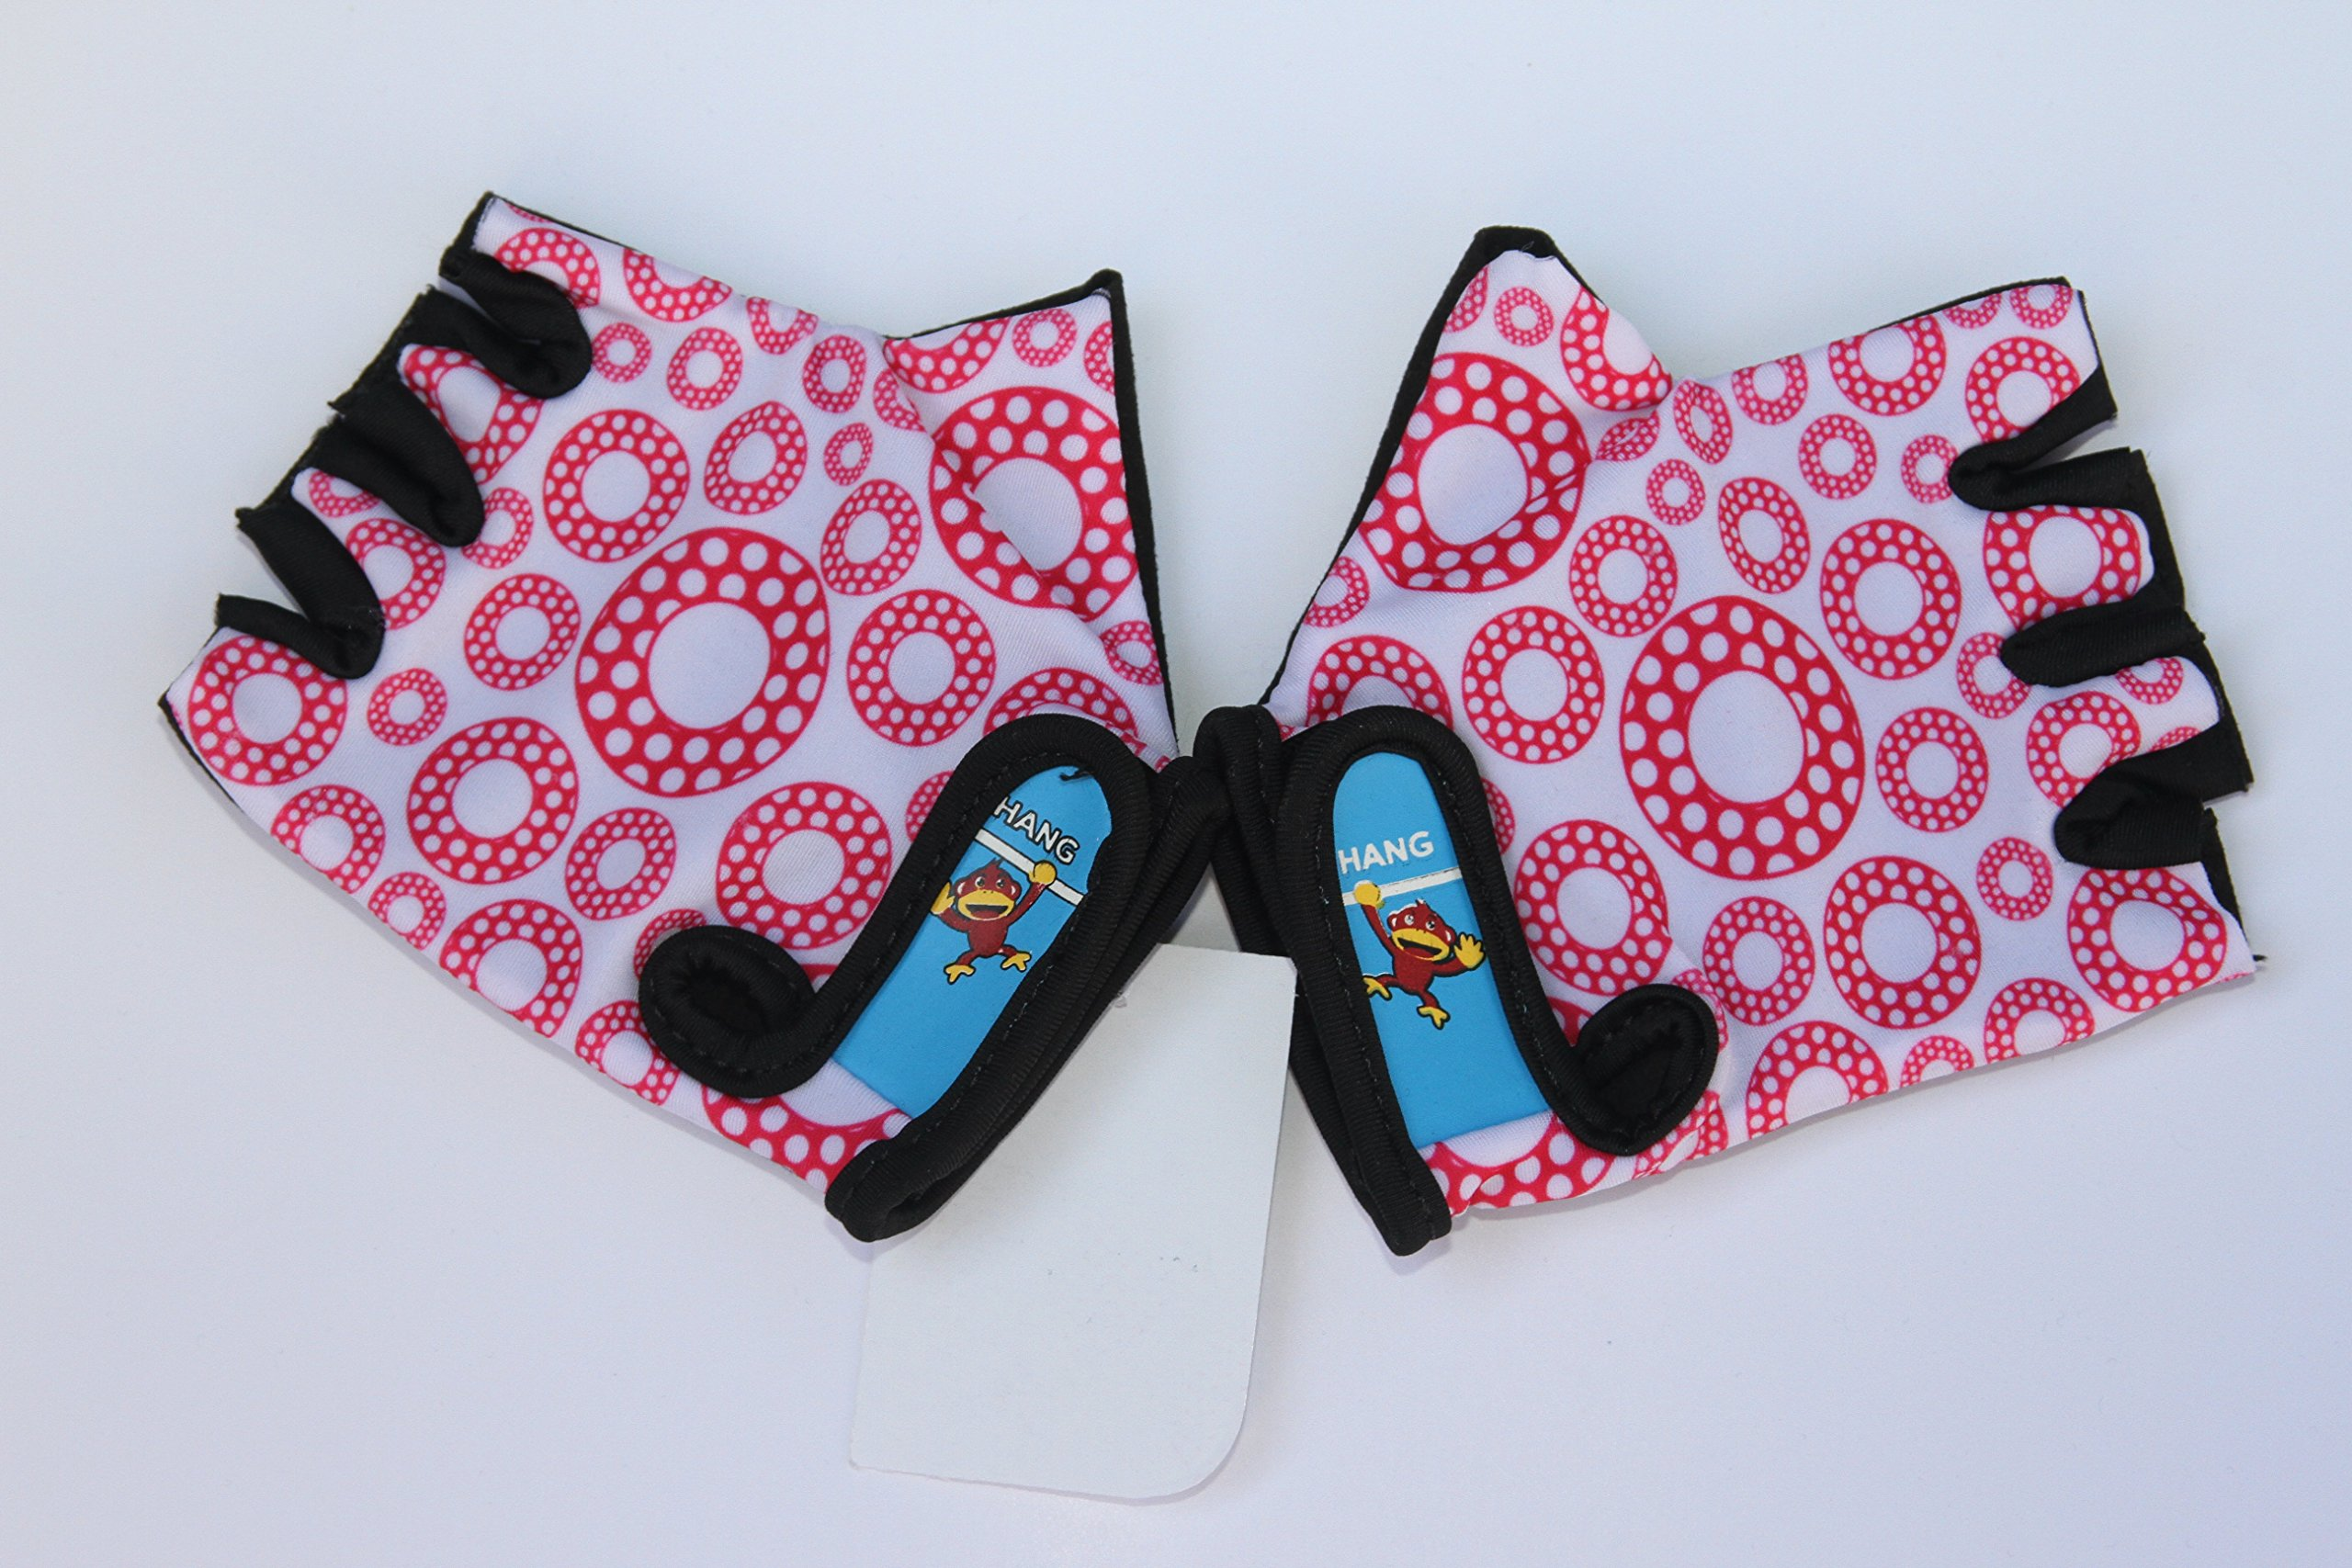 HANG Monkey Bars Gloves (Kids 5 and 6) with Grip Control